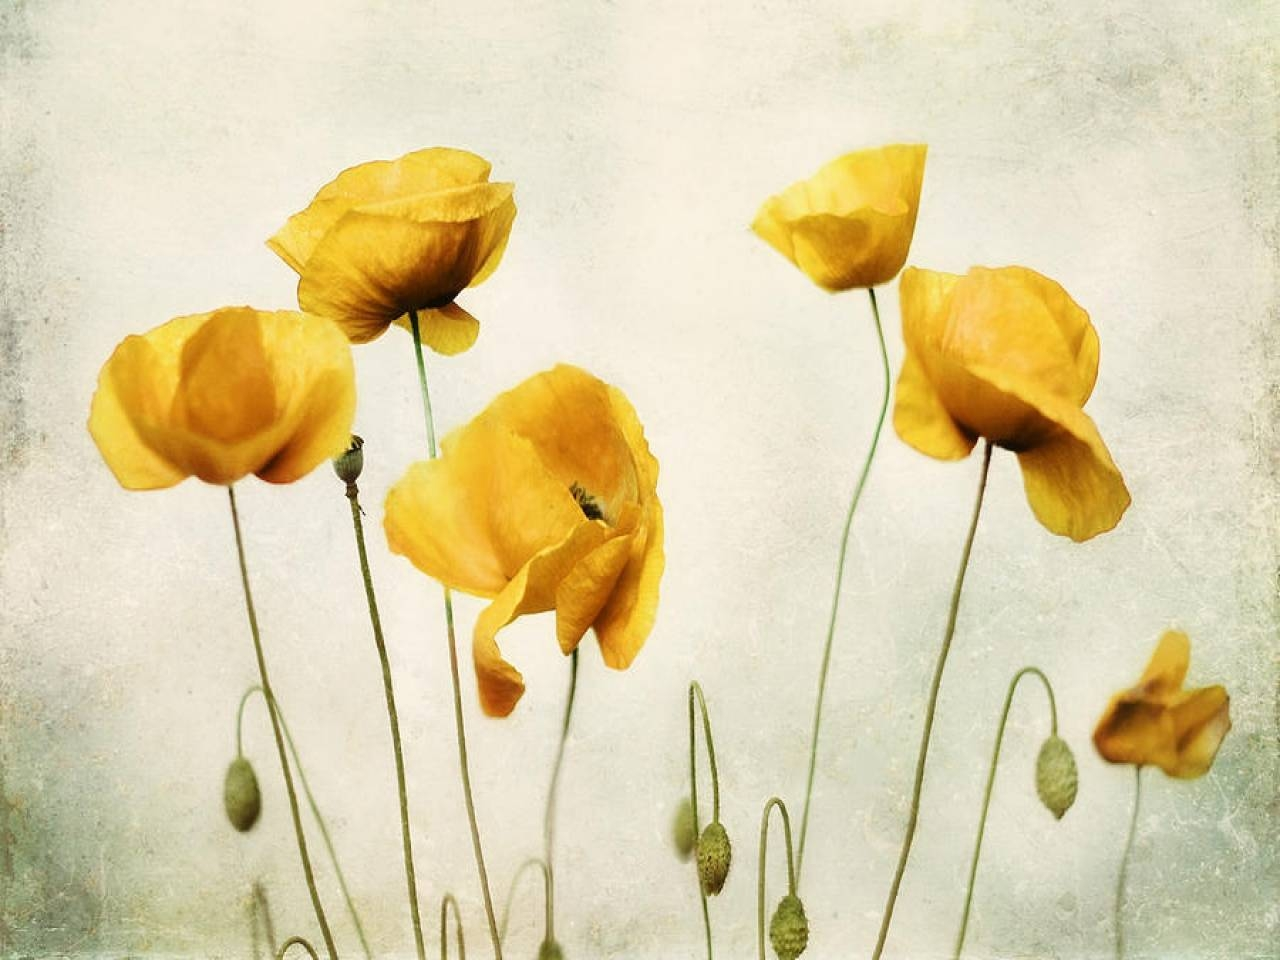 Wall Art Designs: Poppy Wall Art Yellow Poppy Yellow Poppies Wall Throughout 2017 Metal Poppy Wall Art (View 16 of 30)